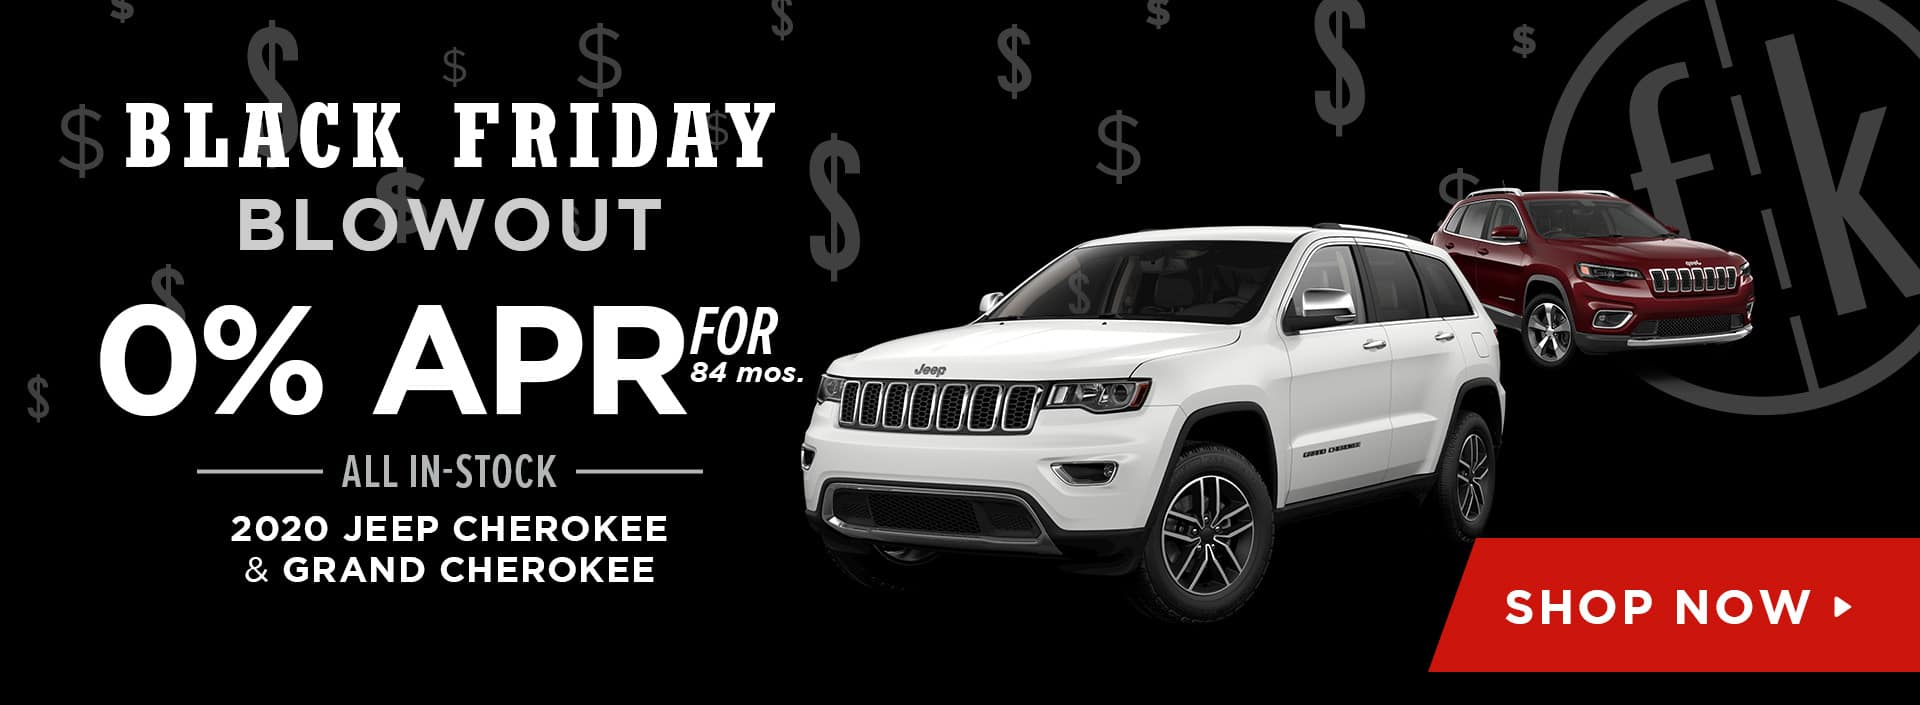 0% for 84 mos. All In-Stock 2020 Jeep Cherokee & Grand Cherokee